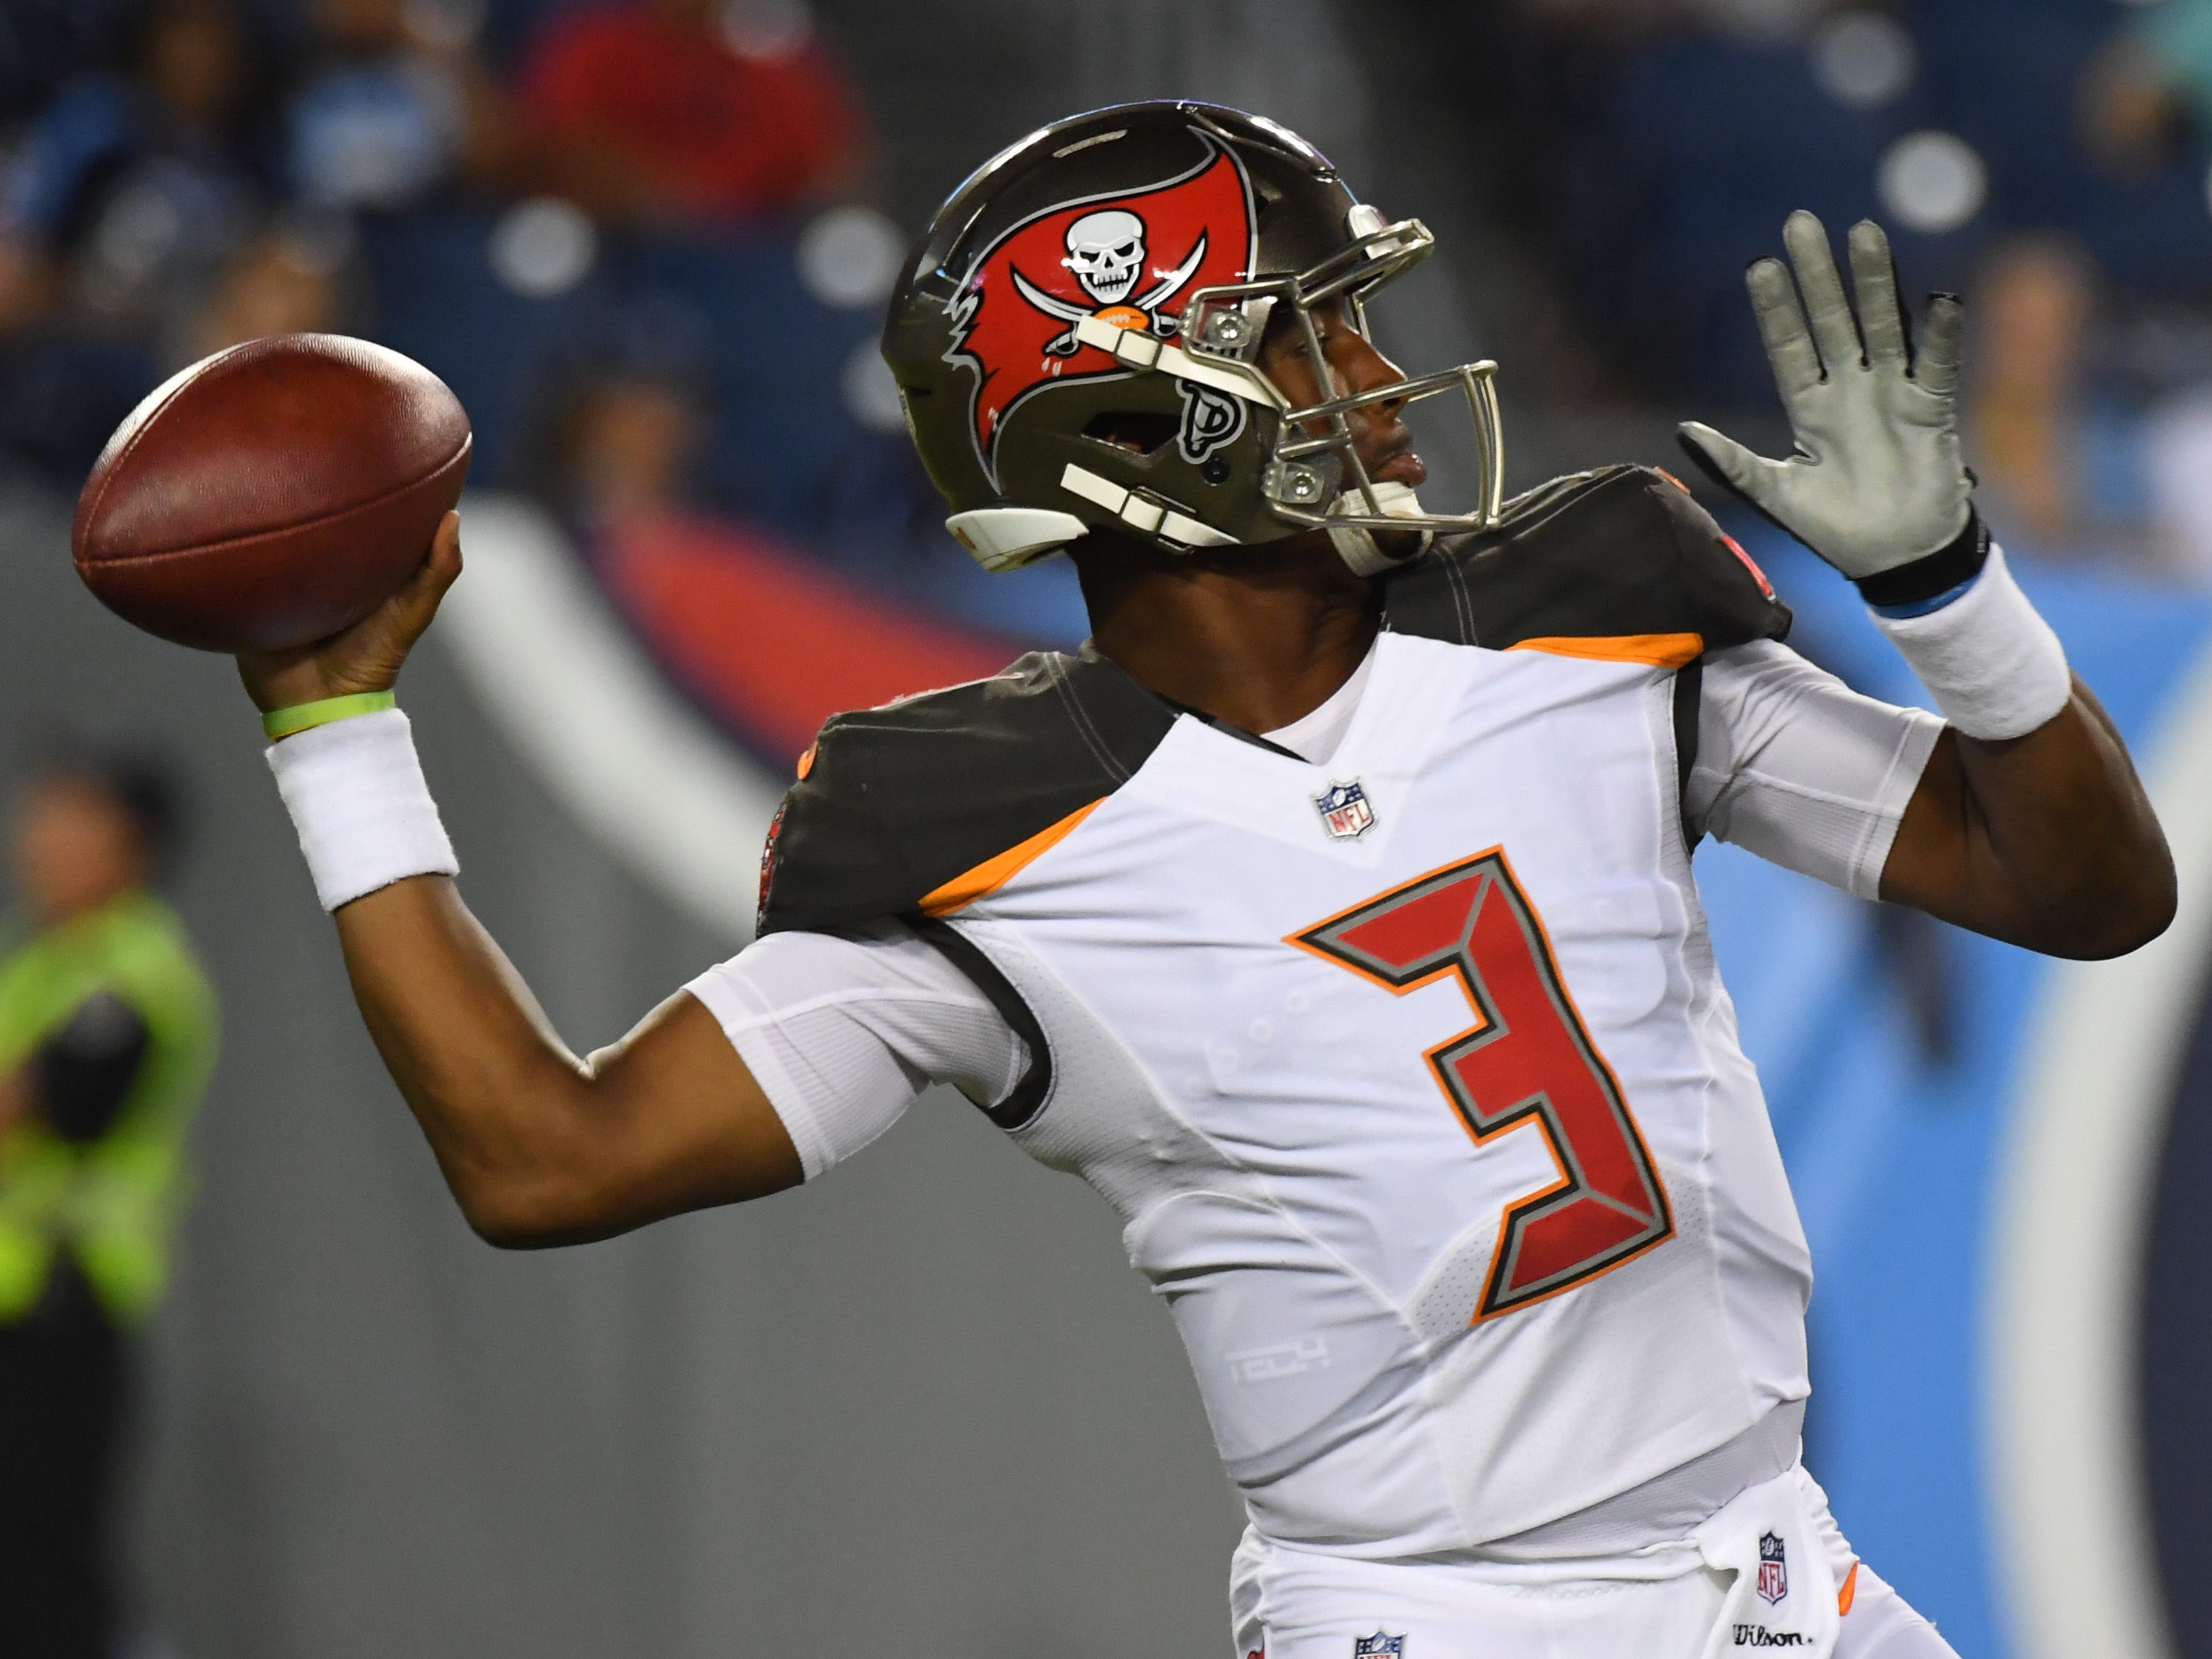 18. Buccaneers (19): Jameis Winston will be back in saddle, taking NFL's top passing offense to Atlanta. Note: Winston has lost nine of 10 while in saddle.